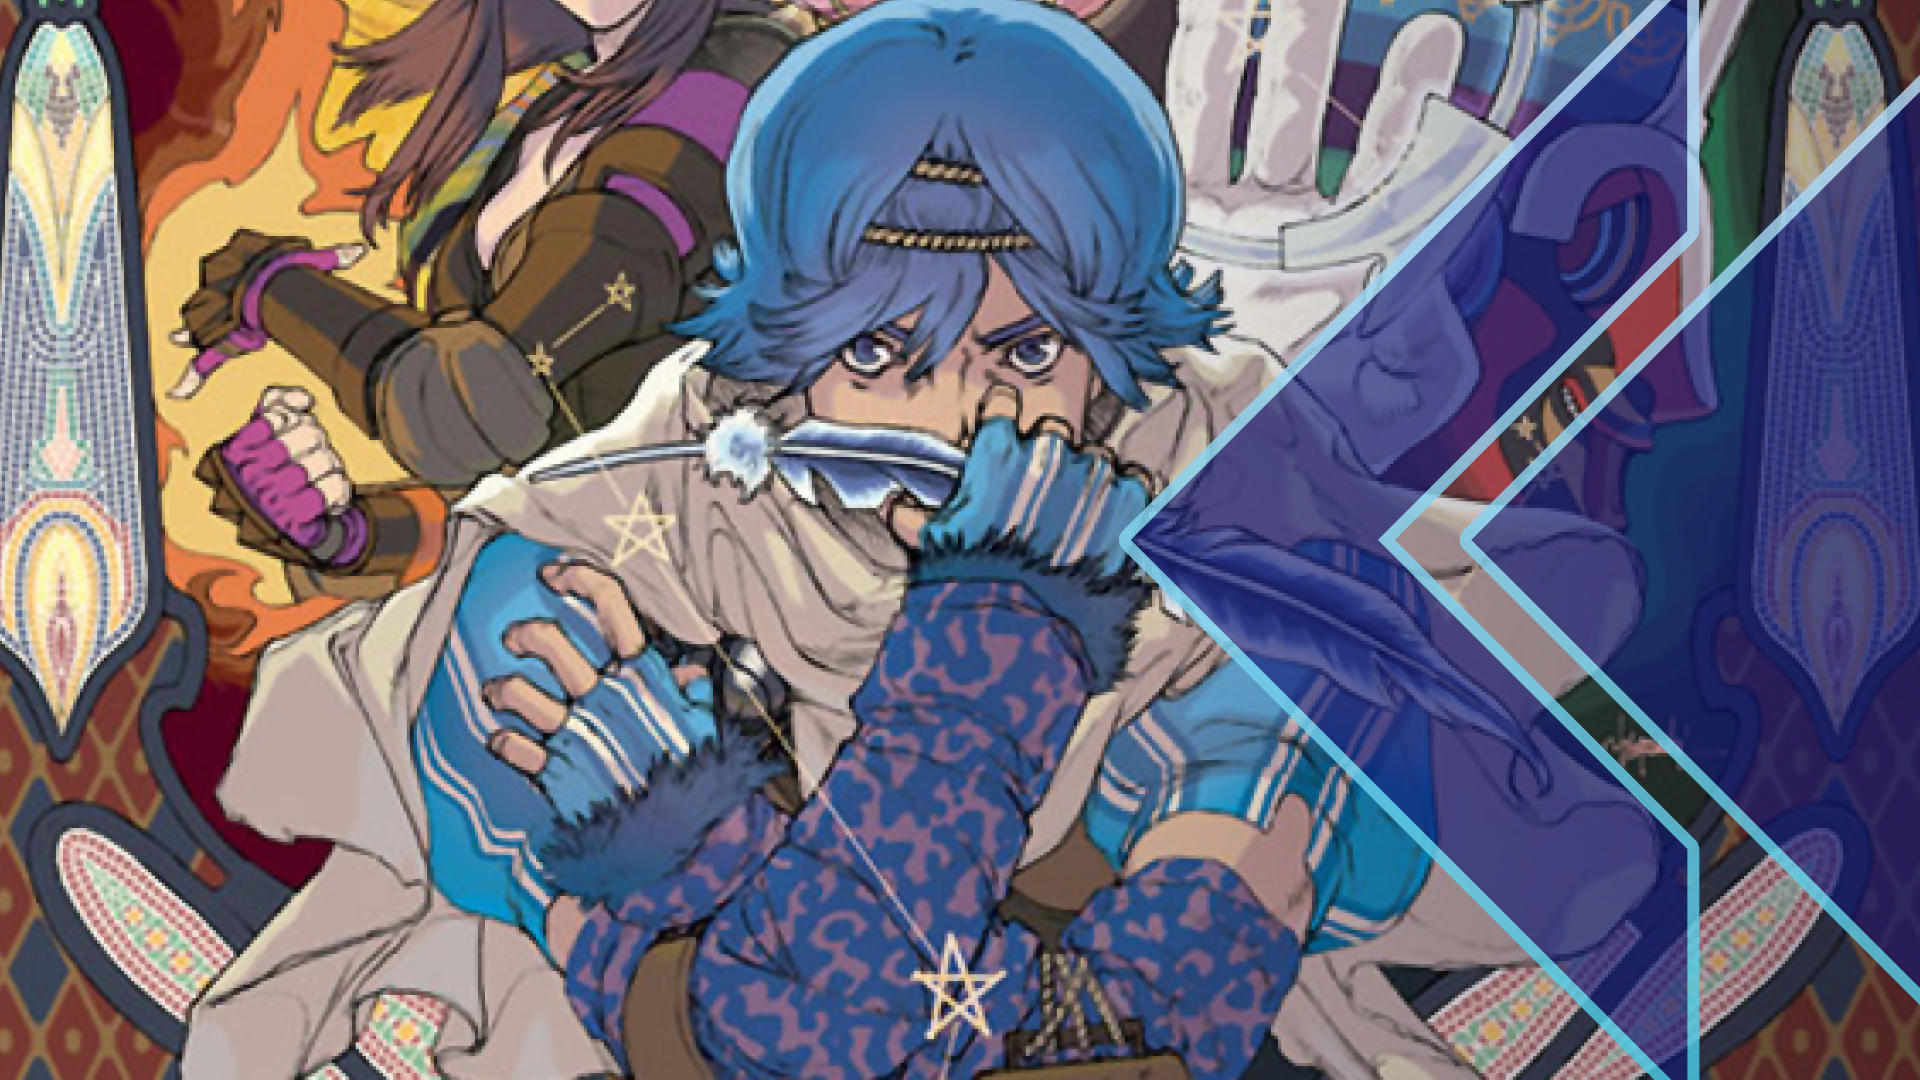 Retro Encounter Baten Kaitos artwork featuring a blue-haired protagonist looking serious while tightly clutching a large blue feather.